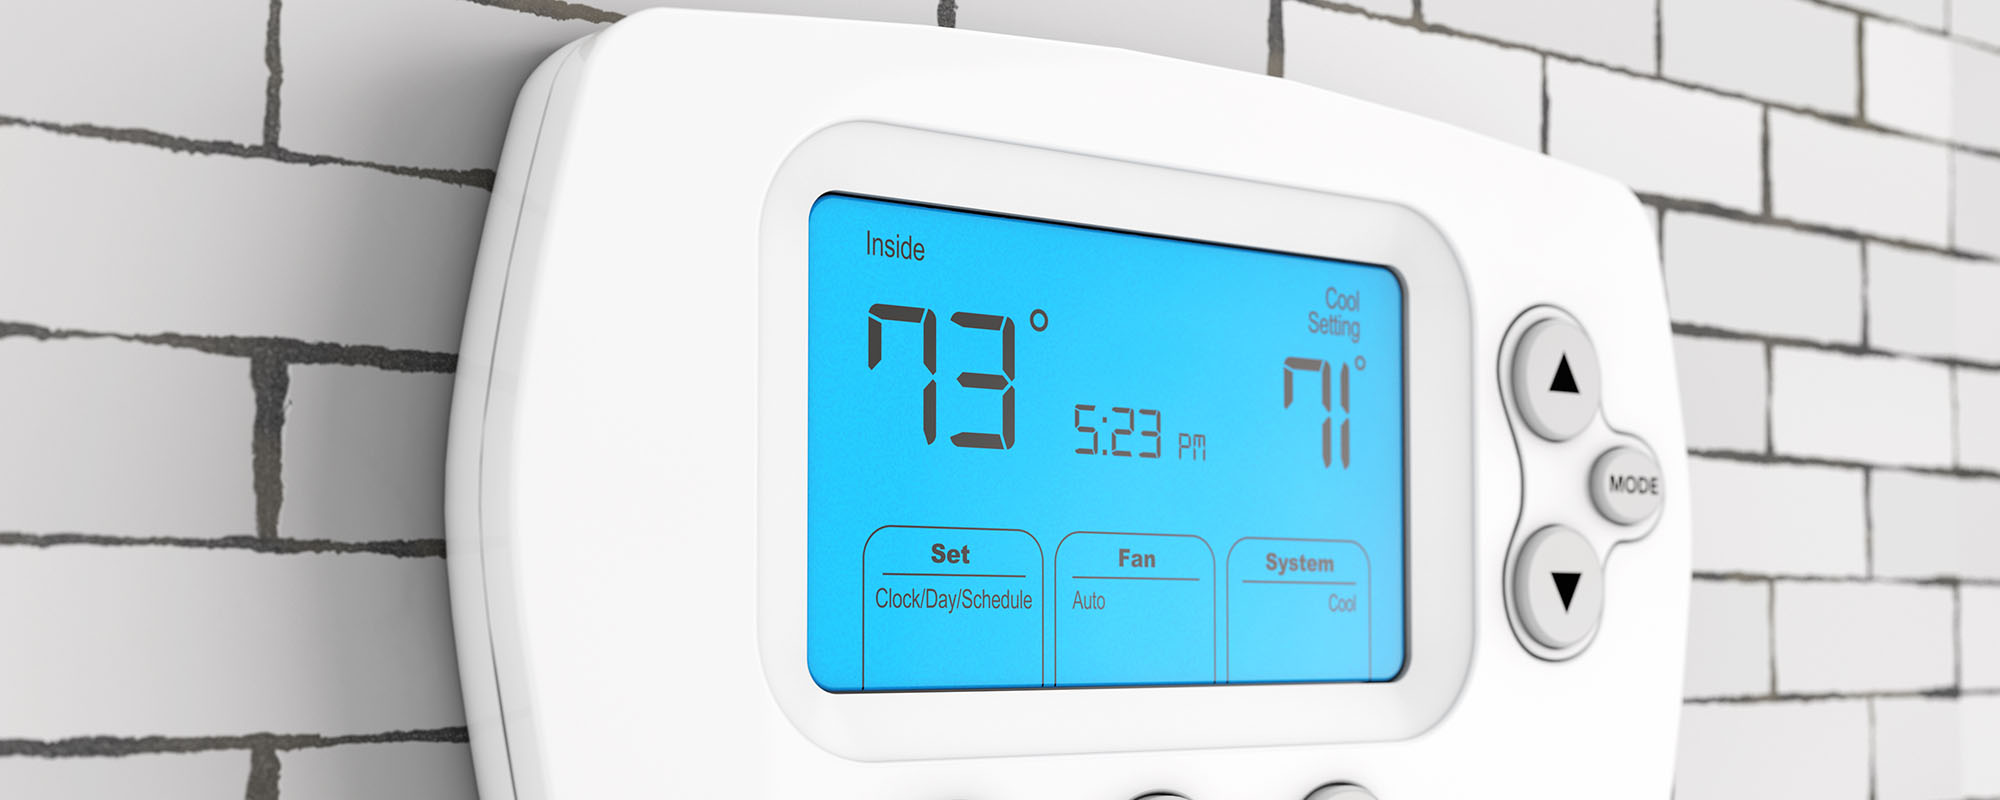 A smart thermostat representing the HVAC maintenance services of John J. Cahill Inc. in Evanston, IL